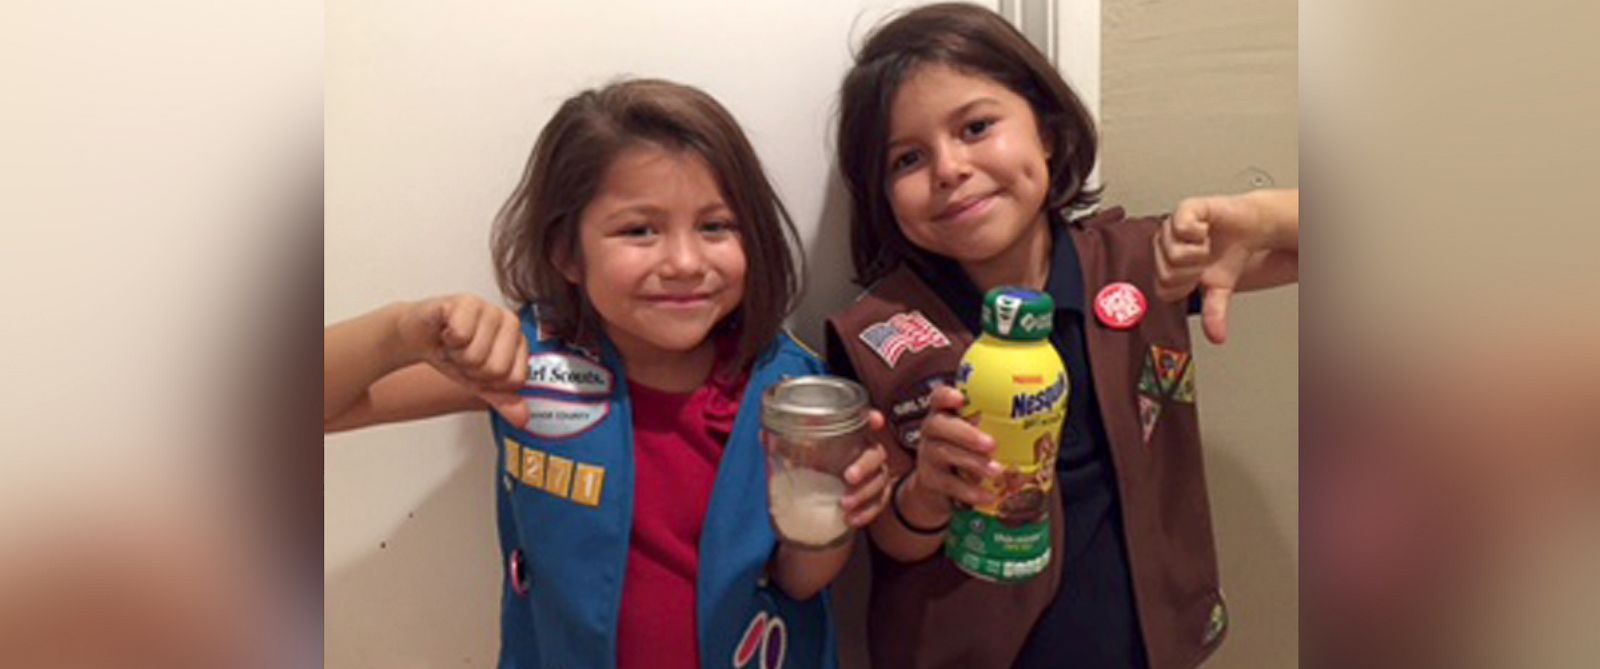 PHOTO: A California mother of two has petitioned the Girl Scouts to end their partnership with Nestle over a cookie-flavored drink that contains 48 grams of sugar per bottle.